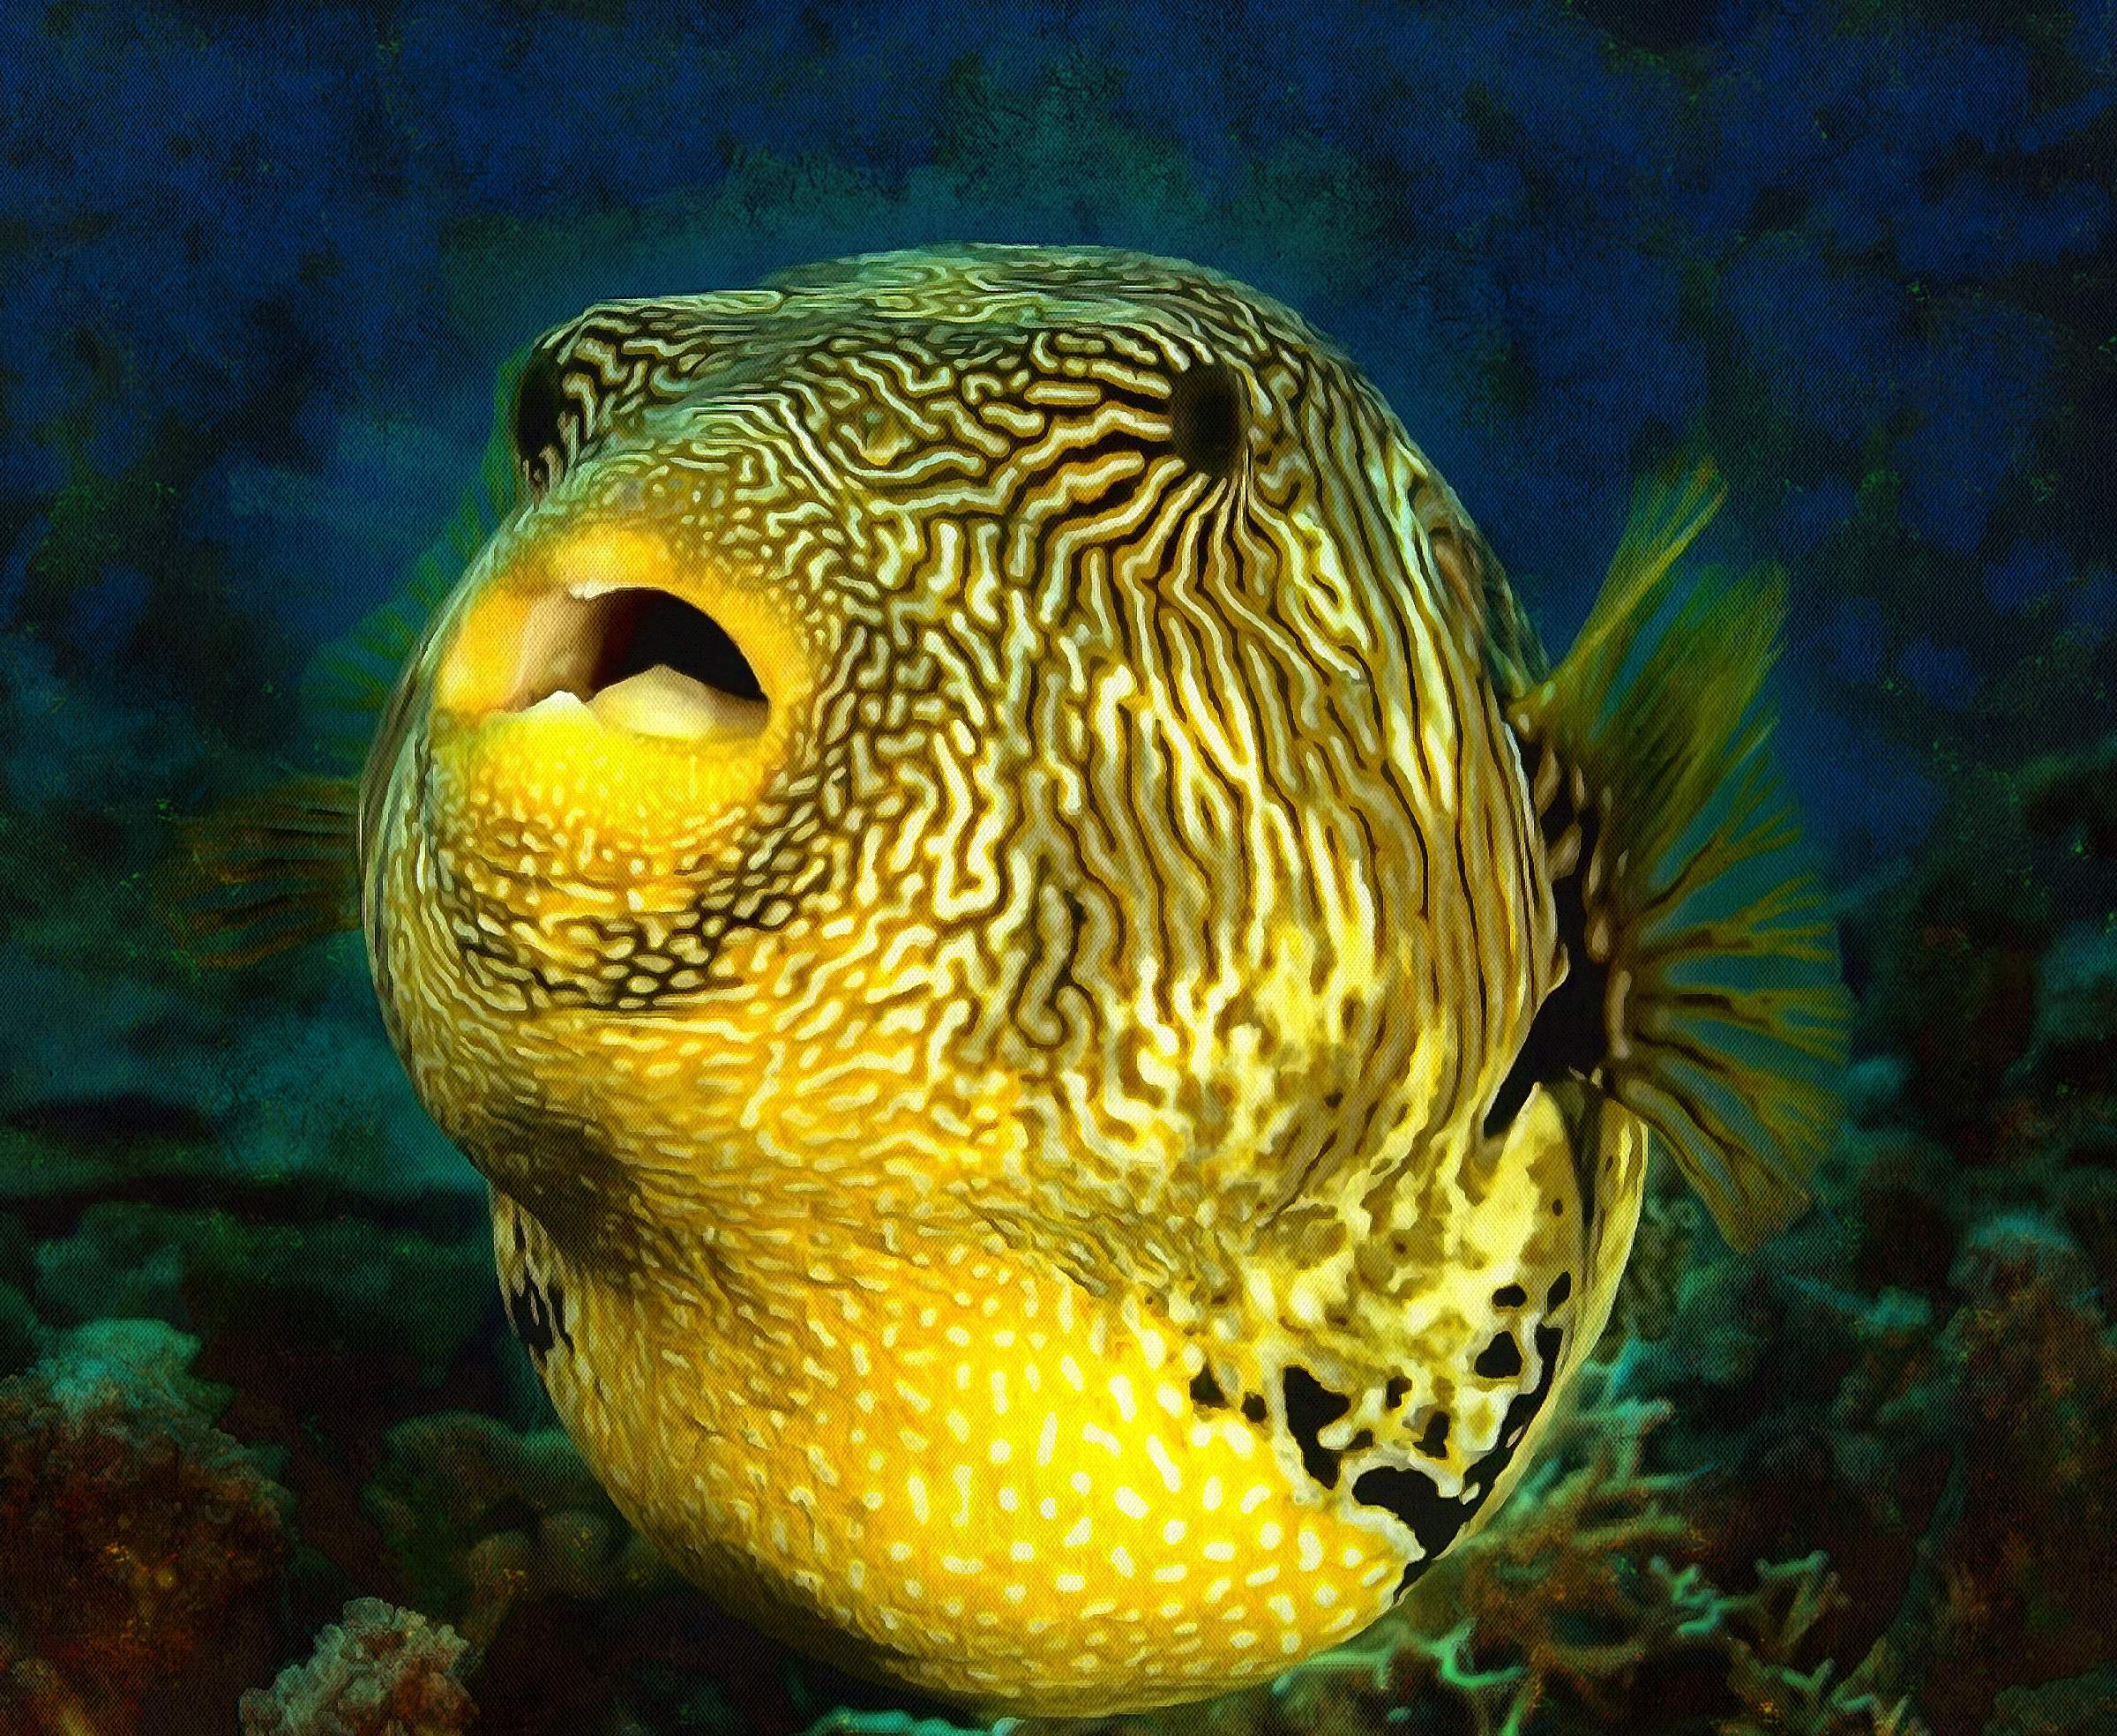 Puffer Fish Facts - Interesting facts about Puffer Fish